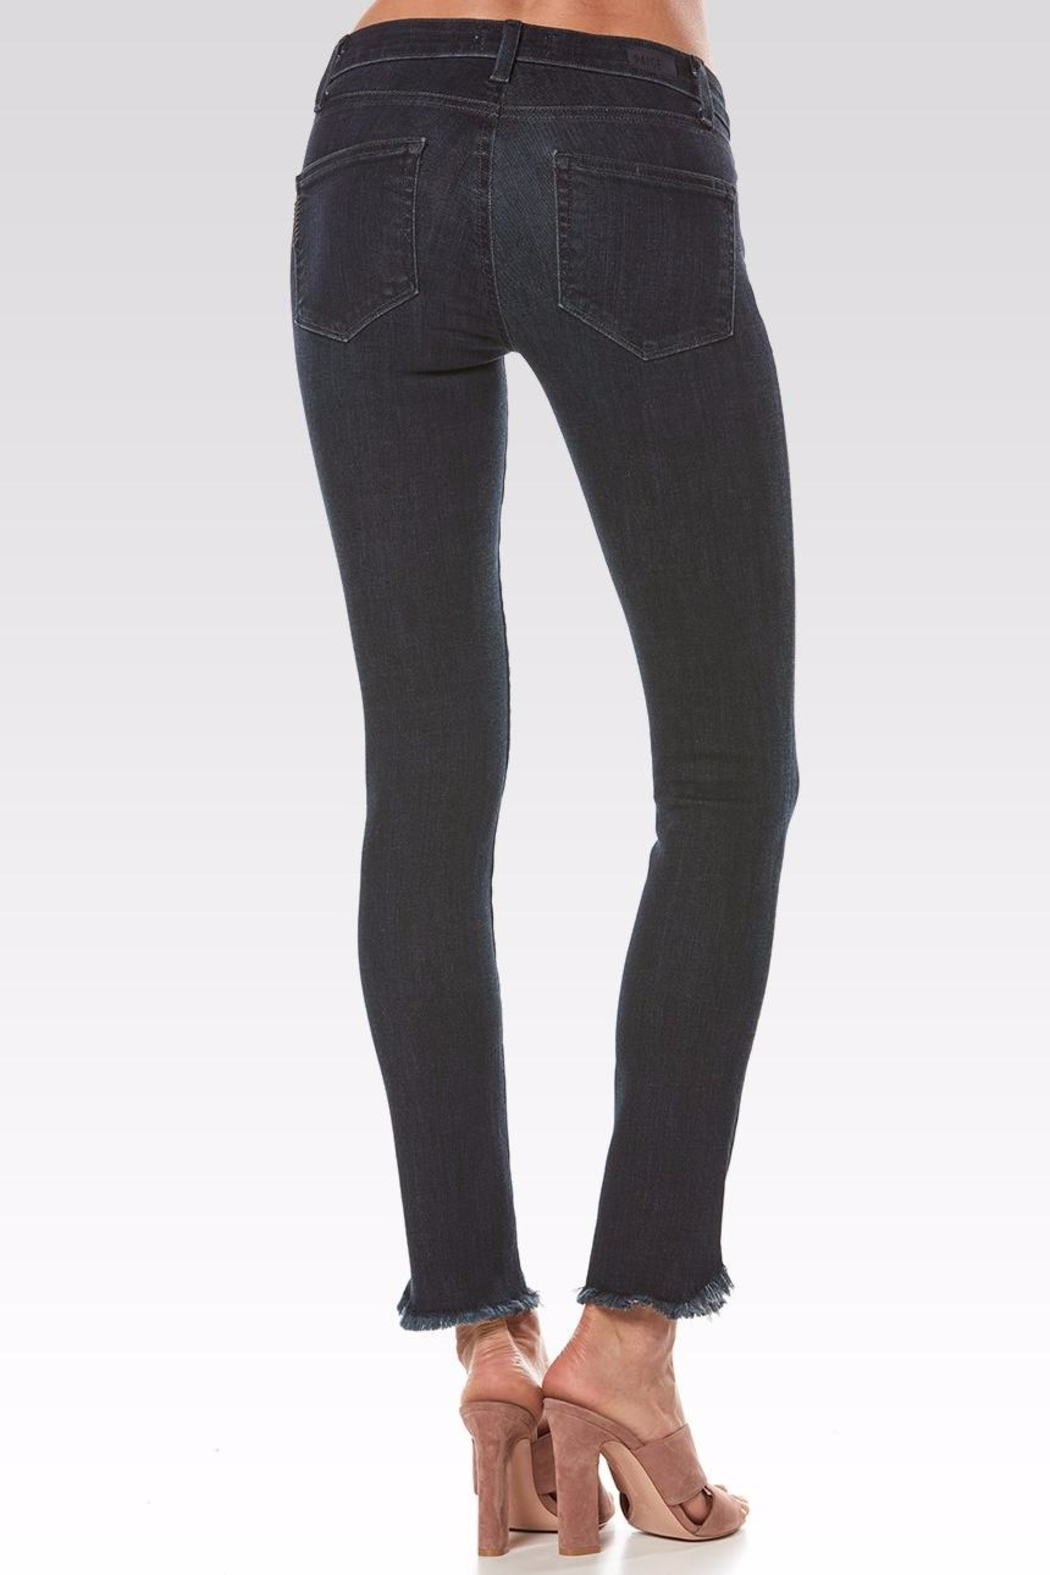 Paige Skyline Ankle Peg Jeans - Side Cropped Image